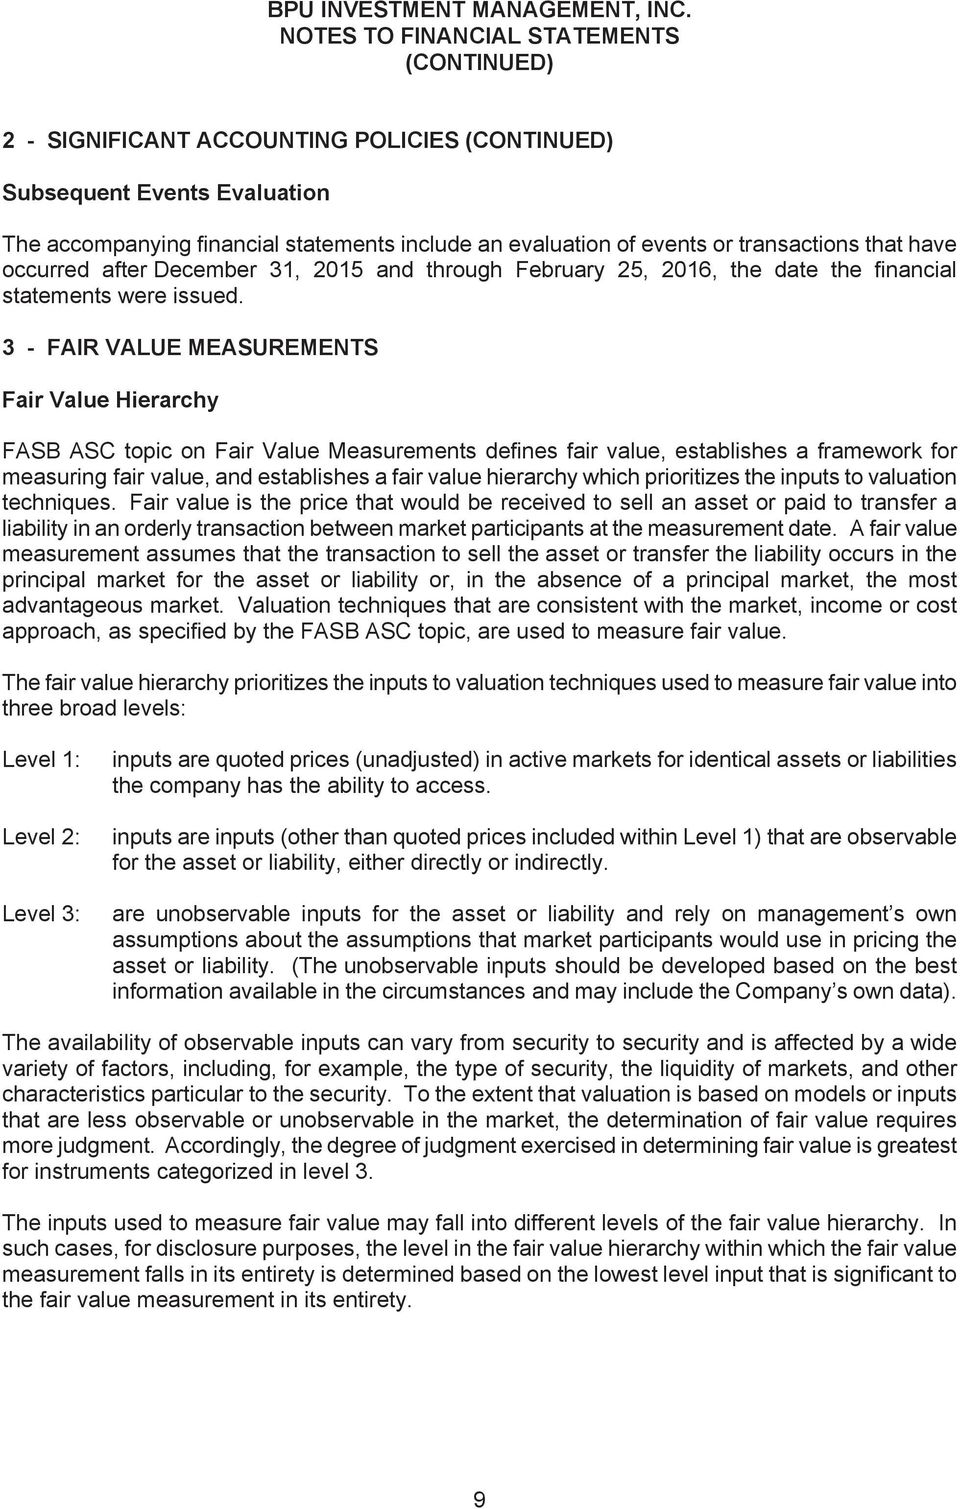 3 - FAIR VALUE MEASUREMENTS Fair Value Hierarchy FASB ASC topic on Fair Value Measurements defines fair value, establishes a framework for measuring fair value, and establishes a fair value hierarchy